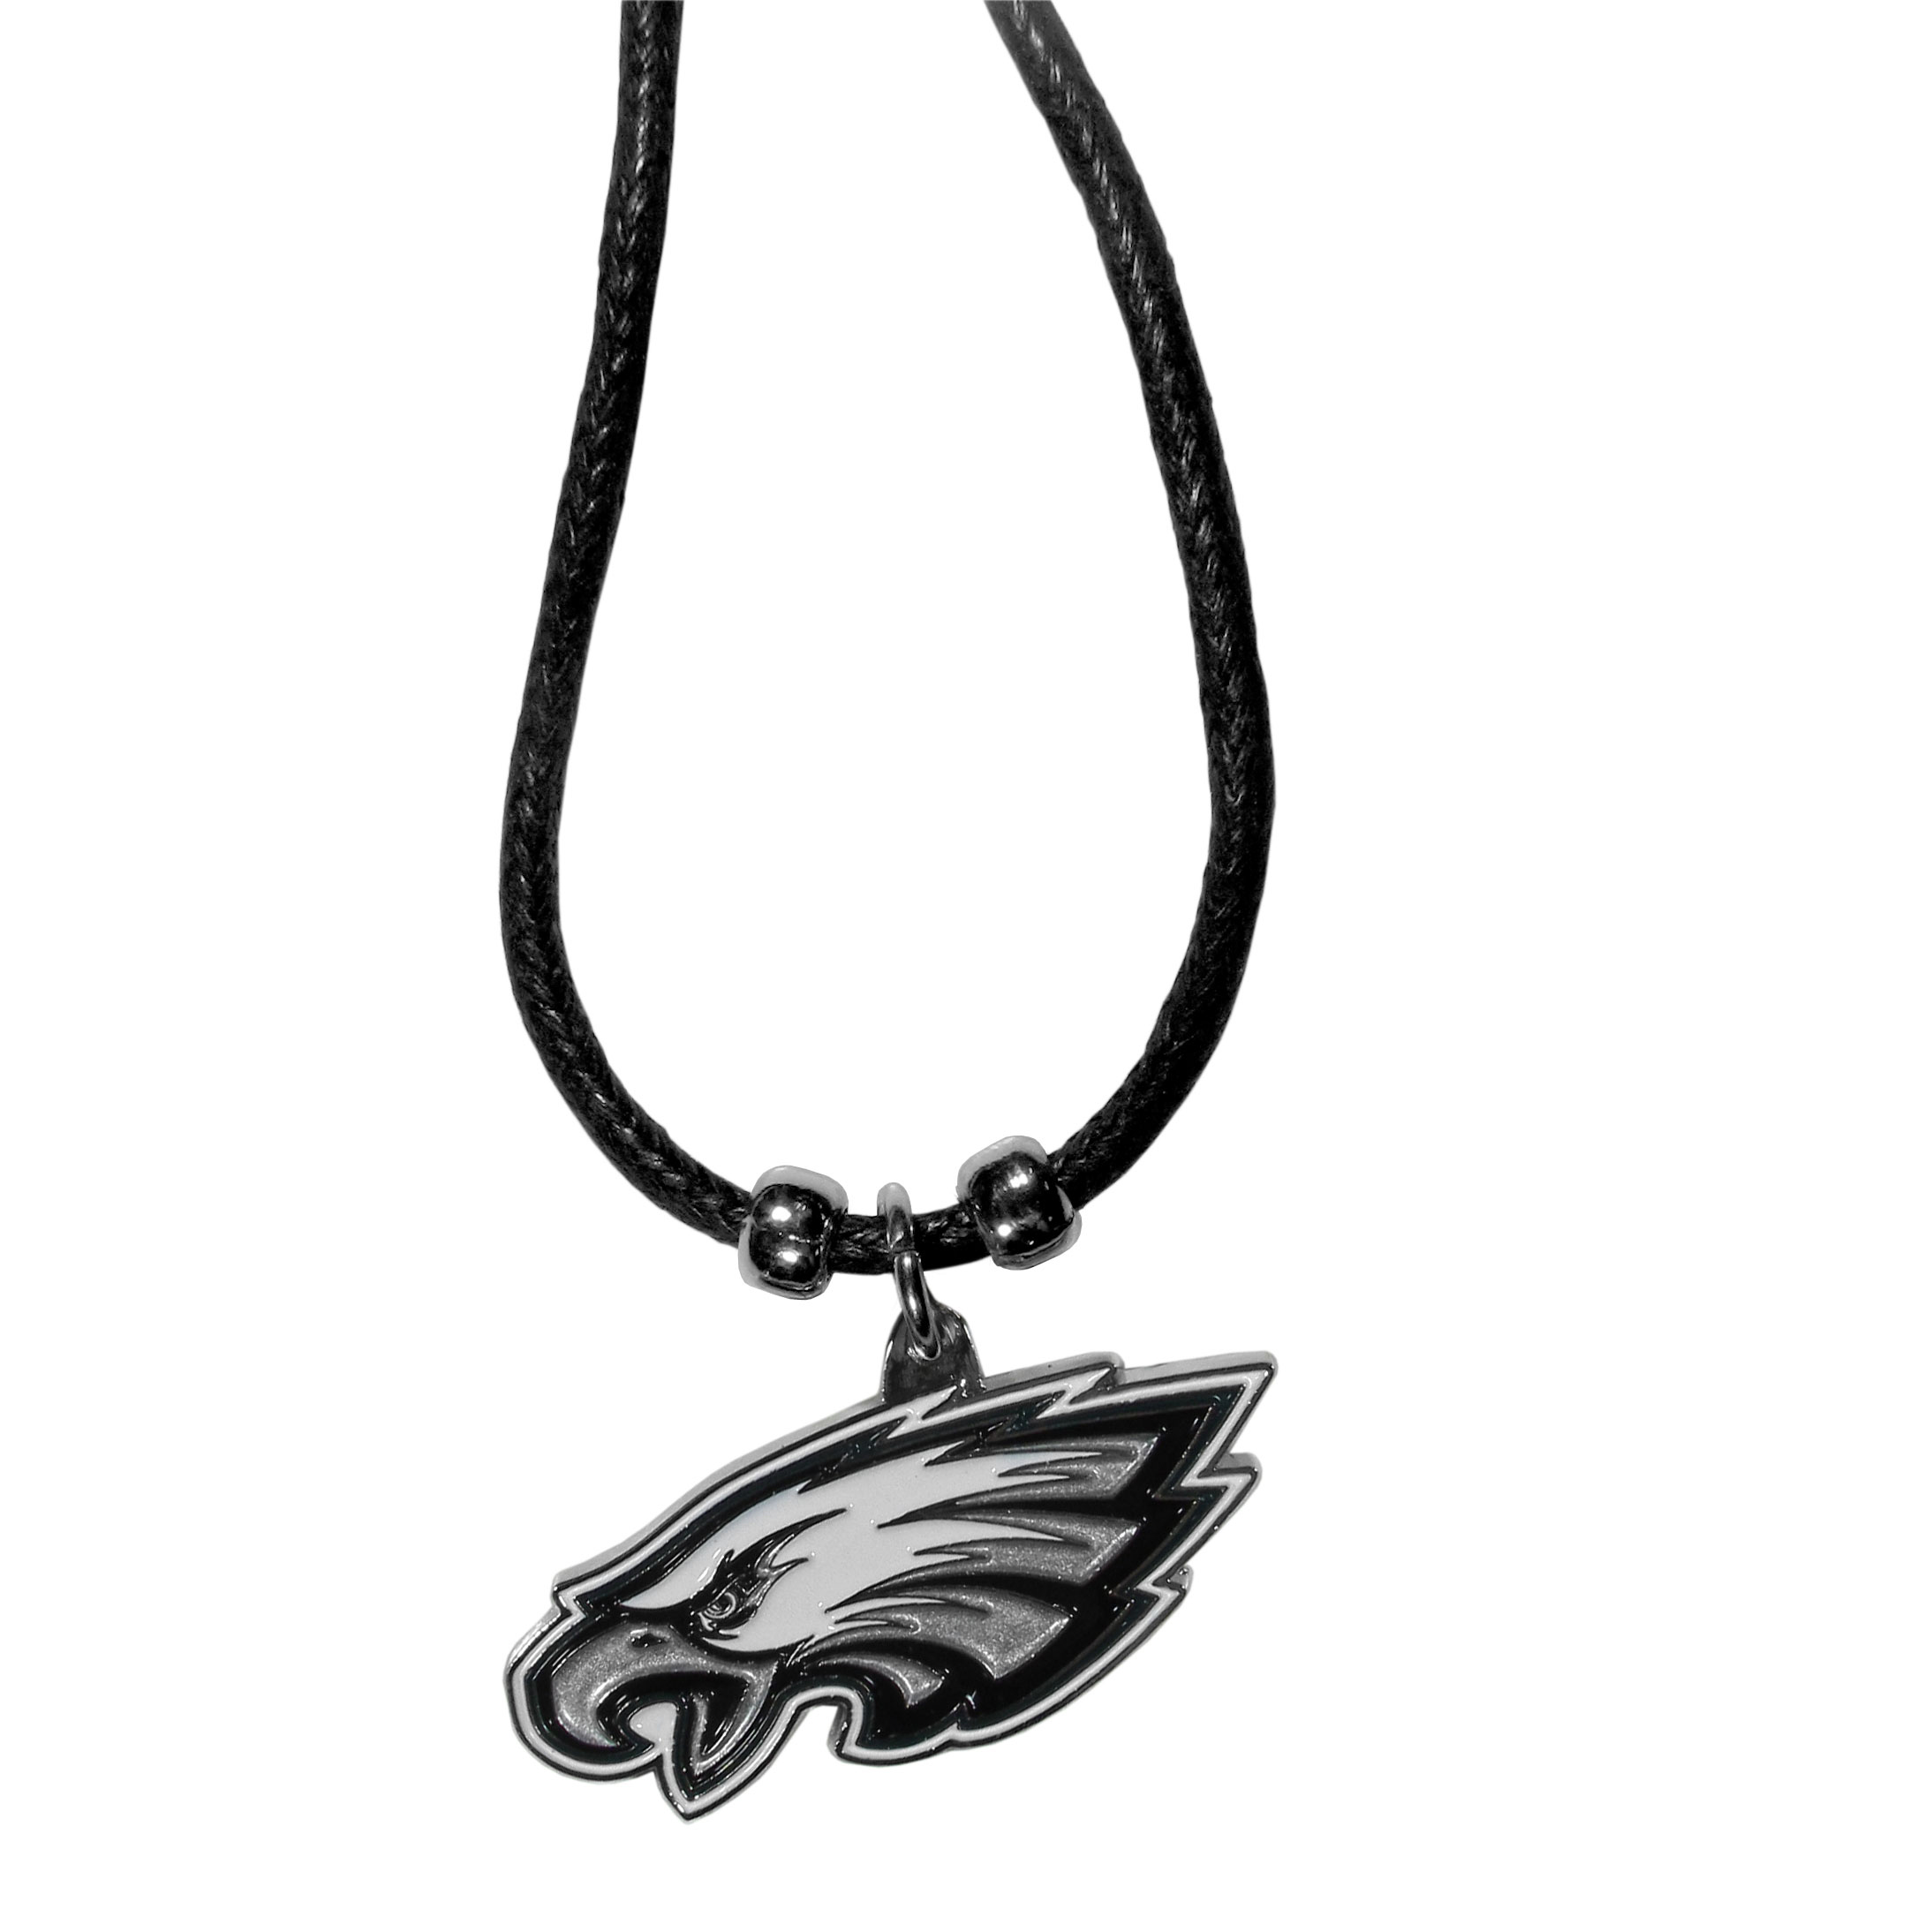 Philadelphia Eagles Cord Necklace - This classic style cotton cord necklace features an extra large Philadelphia Eagles pendant on a 21 inch cord.